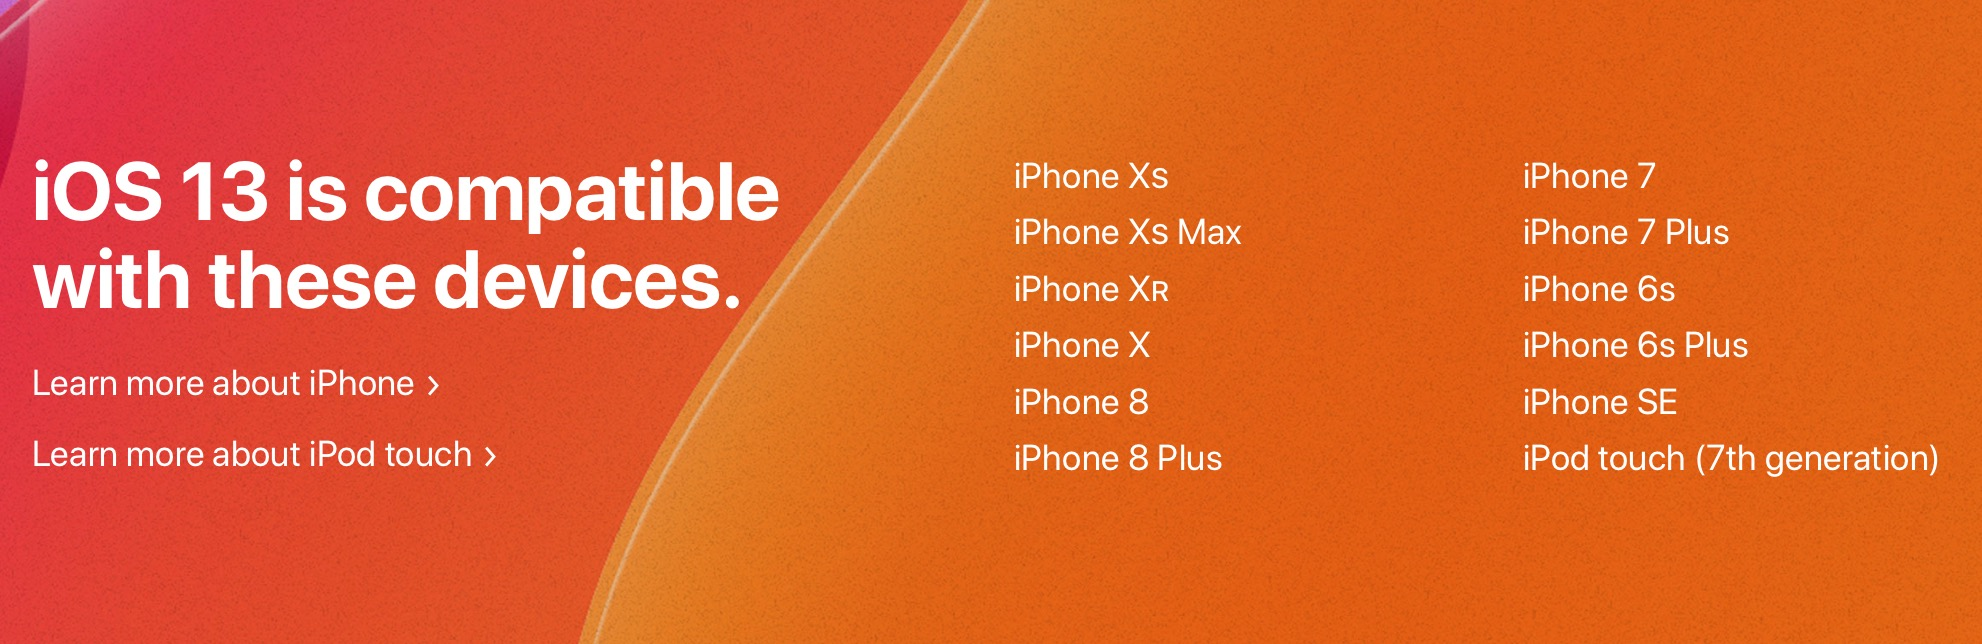 iOS 13 compatible iPhone and iPod models